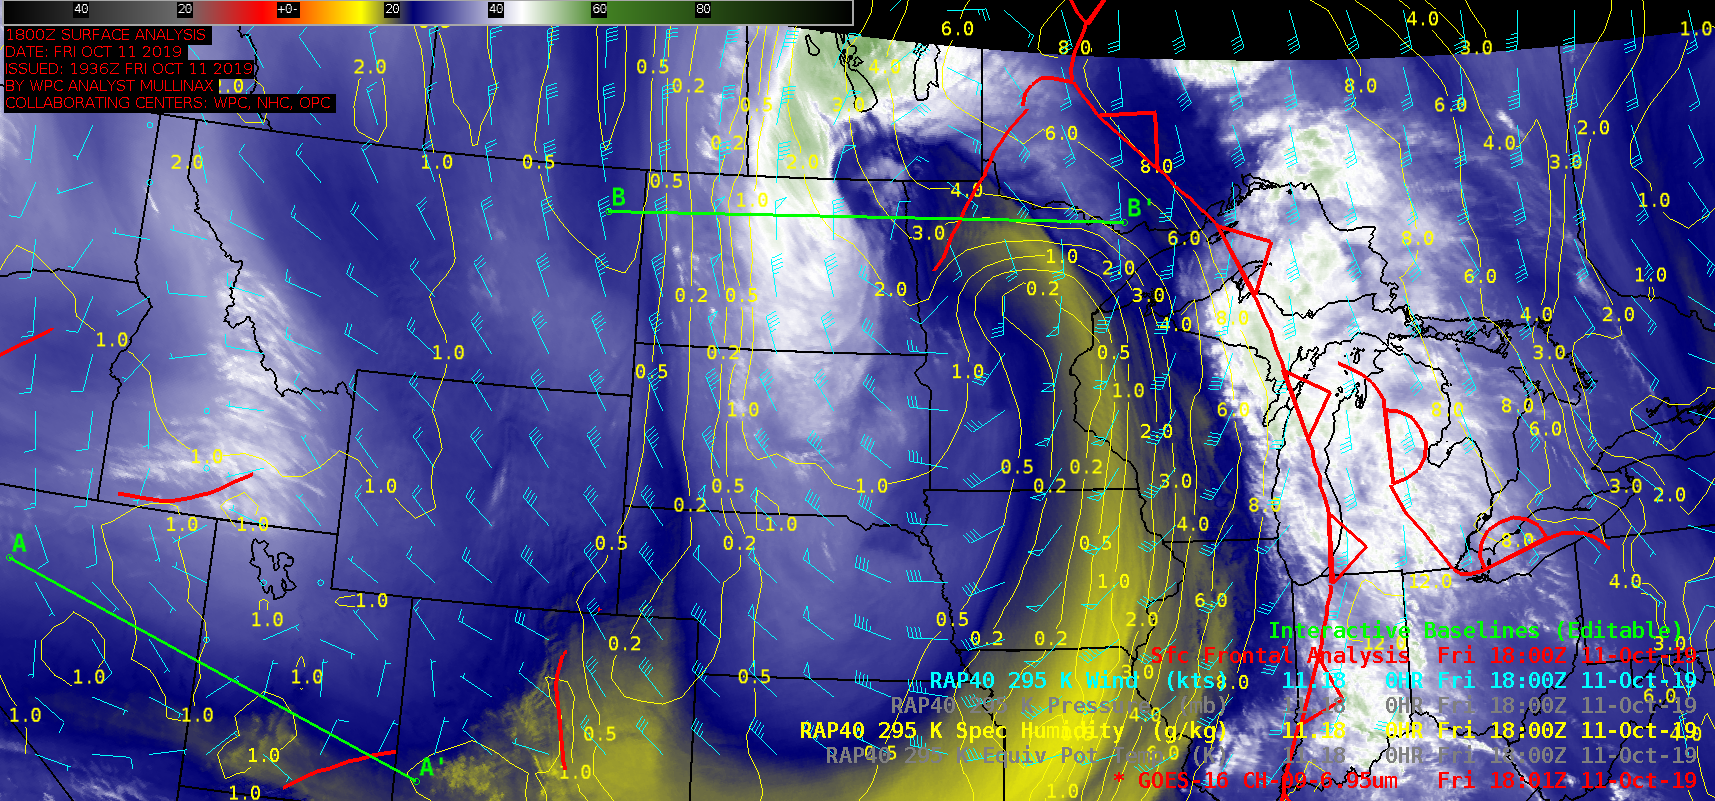 GOES-16 Mid-level Water Vapor (6.9 µm) images, with 295 K Specific Humidity contours plotted in yellow and surface fronts plotted in red [click to play animation | MP4]